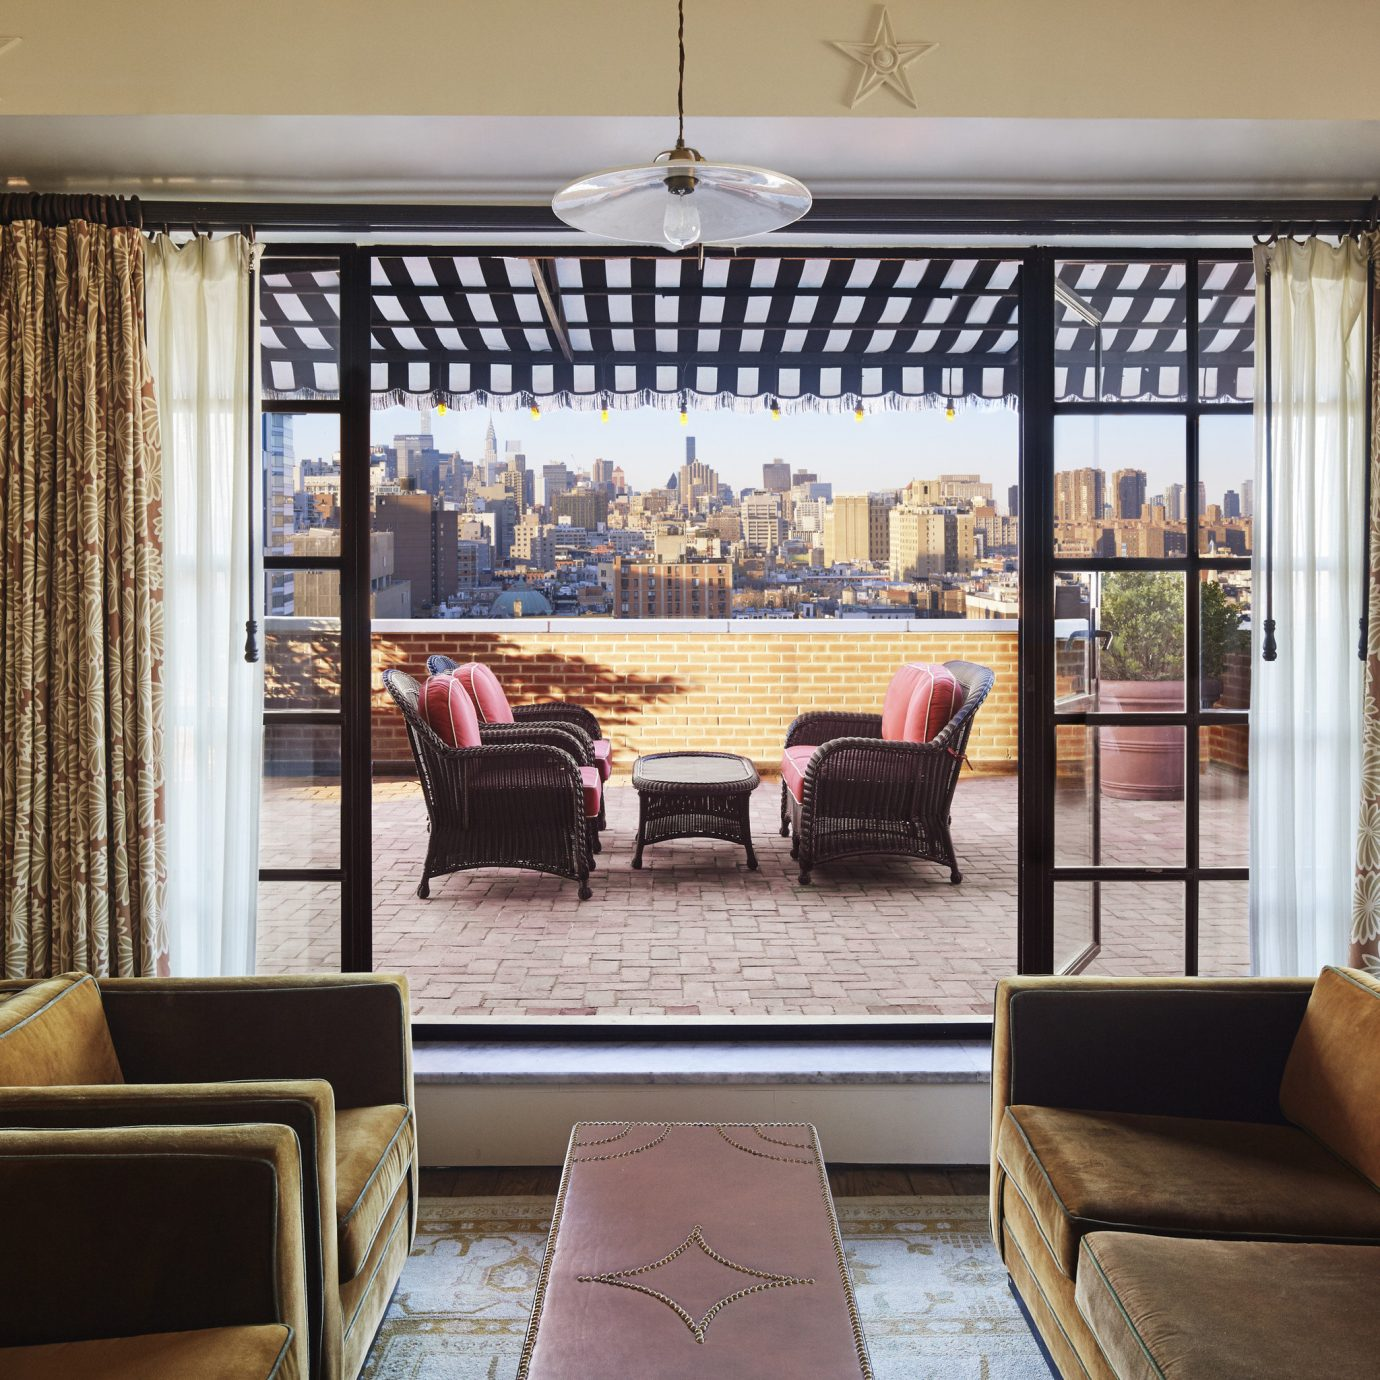 Celebs Hotels Trip Ideas sofa indoor Living room window floor chair interior design living room ceiling window treatment window covering furniture real estate Suite curtain home apartment seat Lobby decorated leather